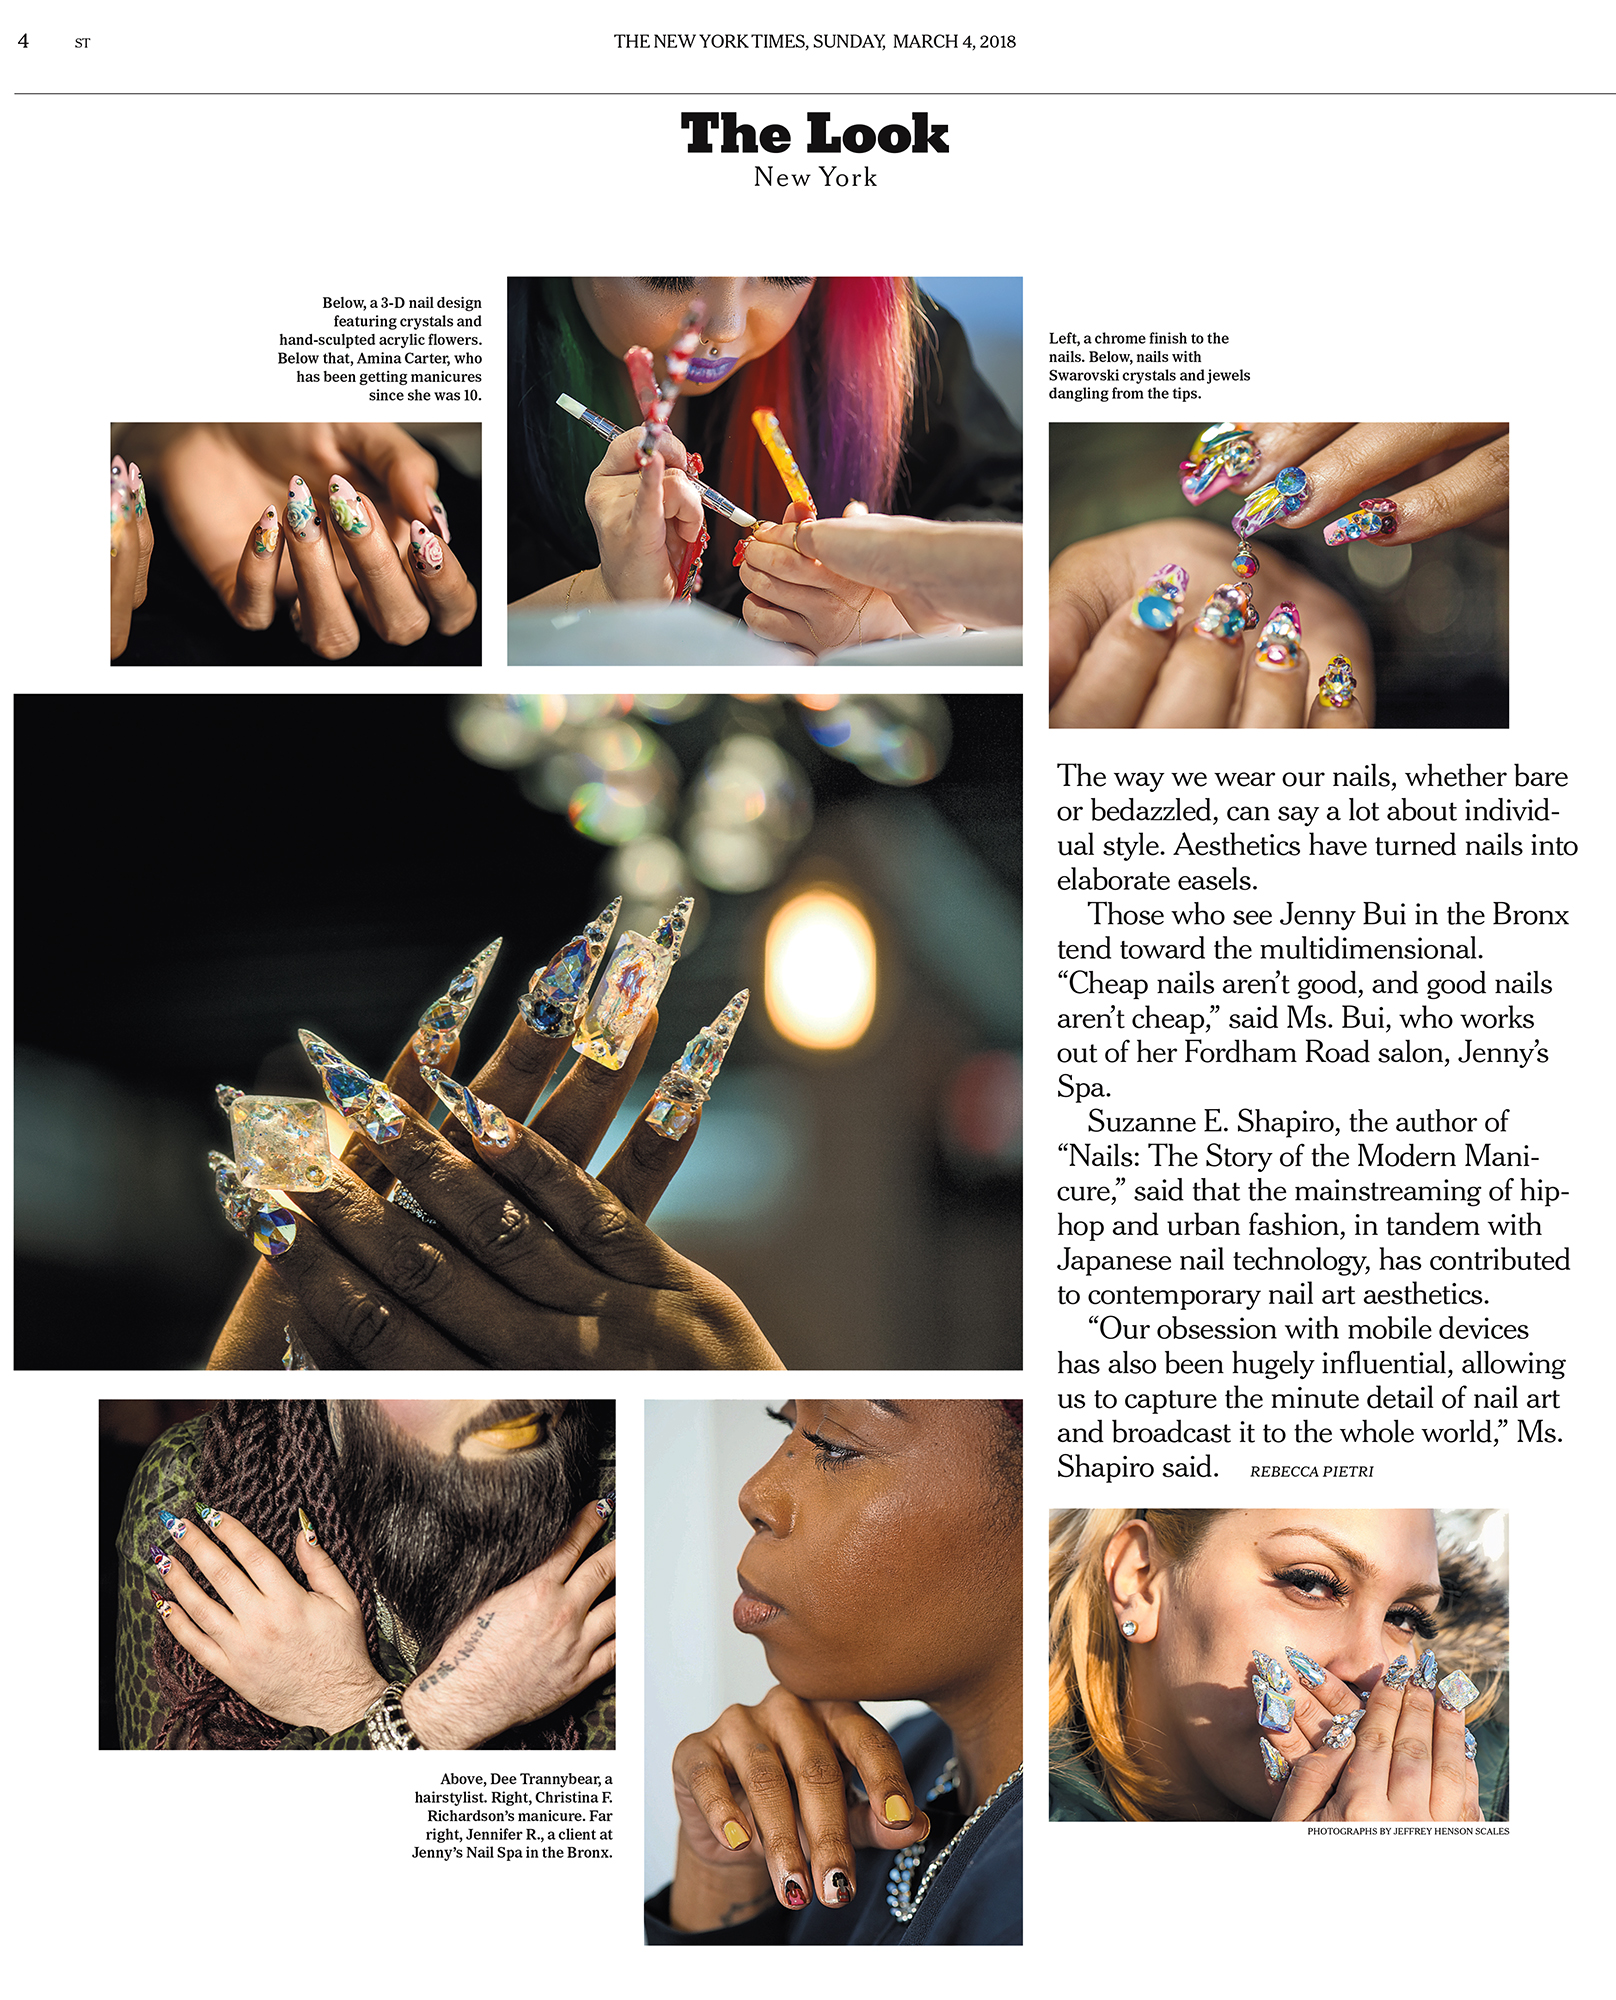 The_New_York_Times_TheNewYorkTimes_THELOOK_The_look_ Style_TakingNewYorkbytheHand_Manicures_Nail_Art_Fashion_Article _Rebecca_Pietri_Writer_Stylist_Casting_JefferyHensonScales_Photographer_EveLyons_Editor.JPG